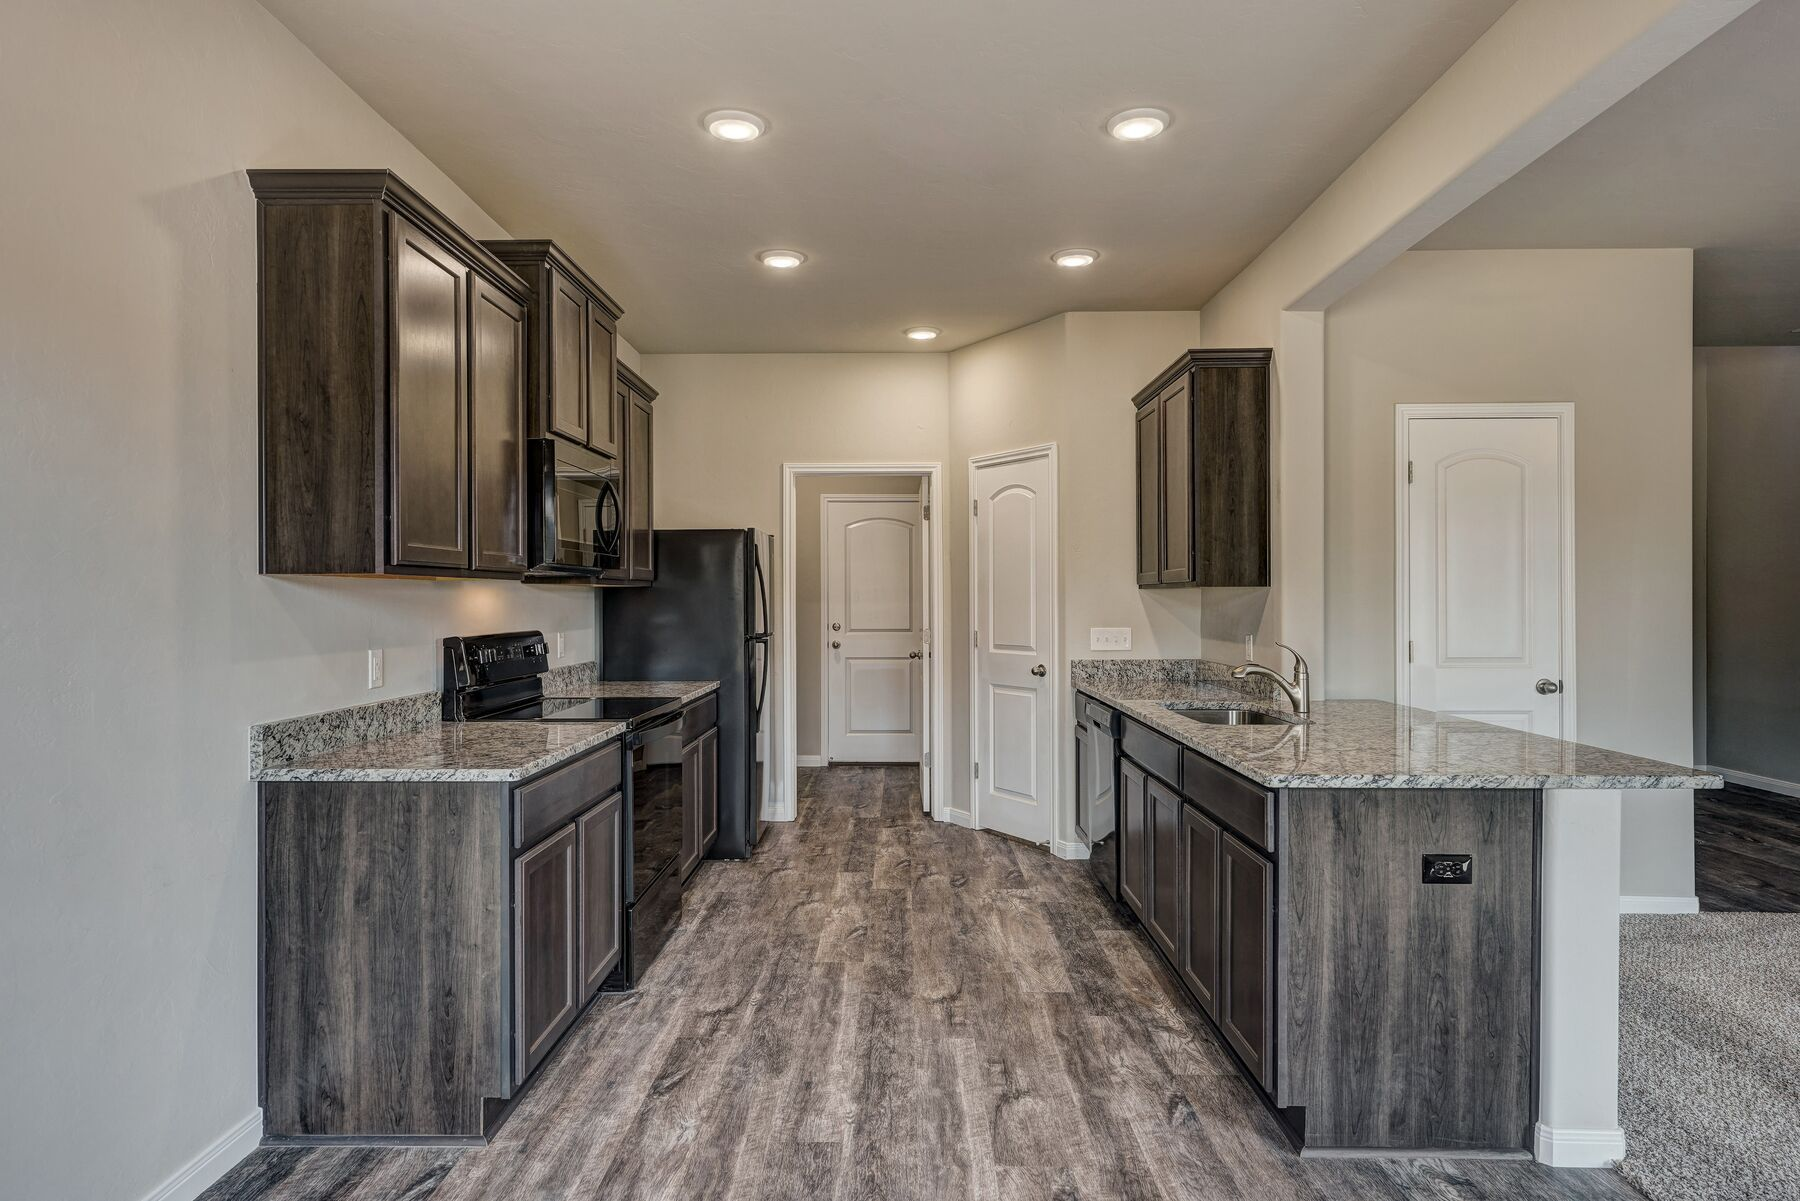 Kitchen featured in the Cypress By LGI Homes in Oklahoma City, OK